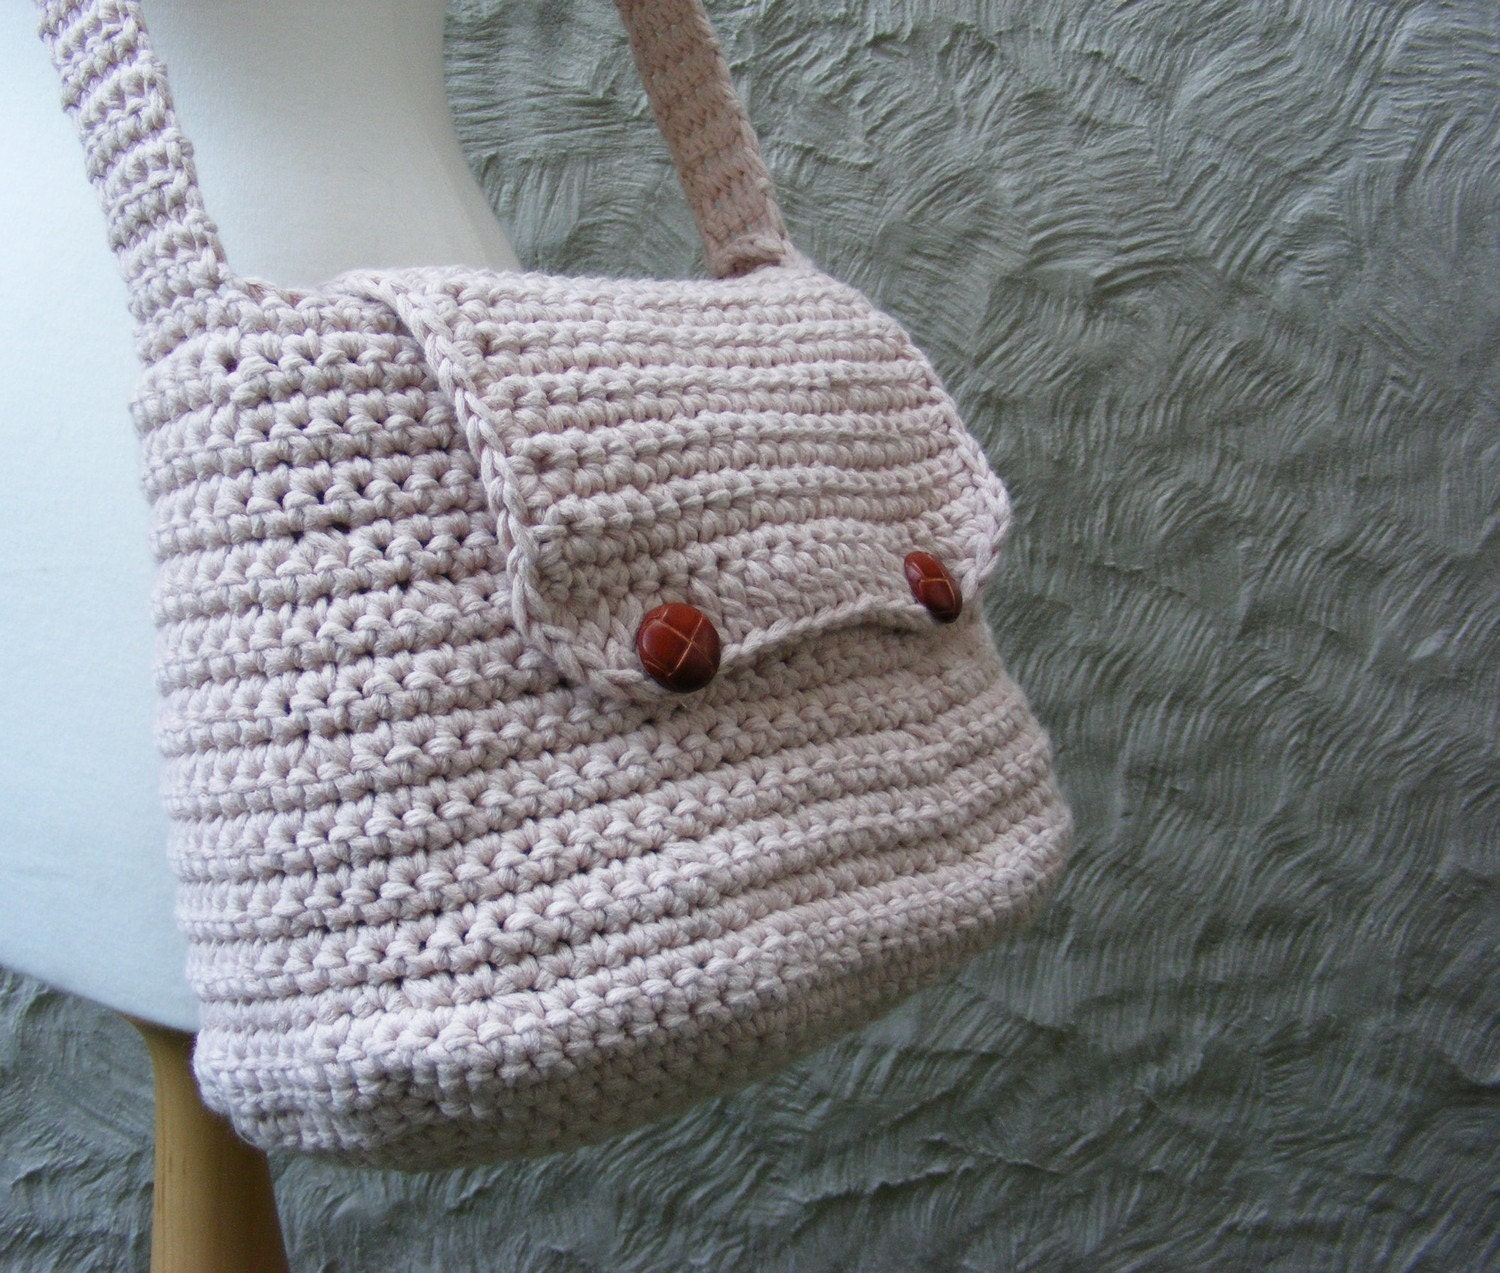 Crochet Satchel Bag Pattern : Messenger Bag Crochet Pattern / Tutorial by TheHappyCrocheter